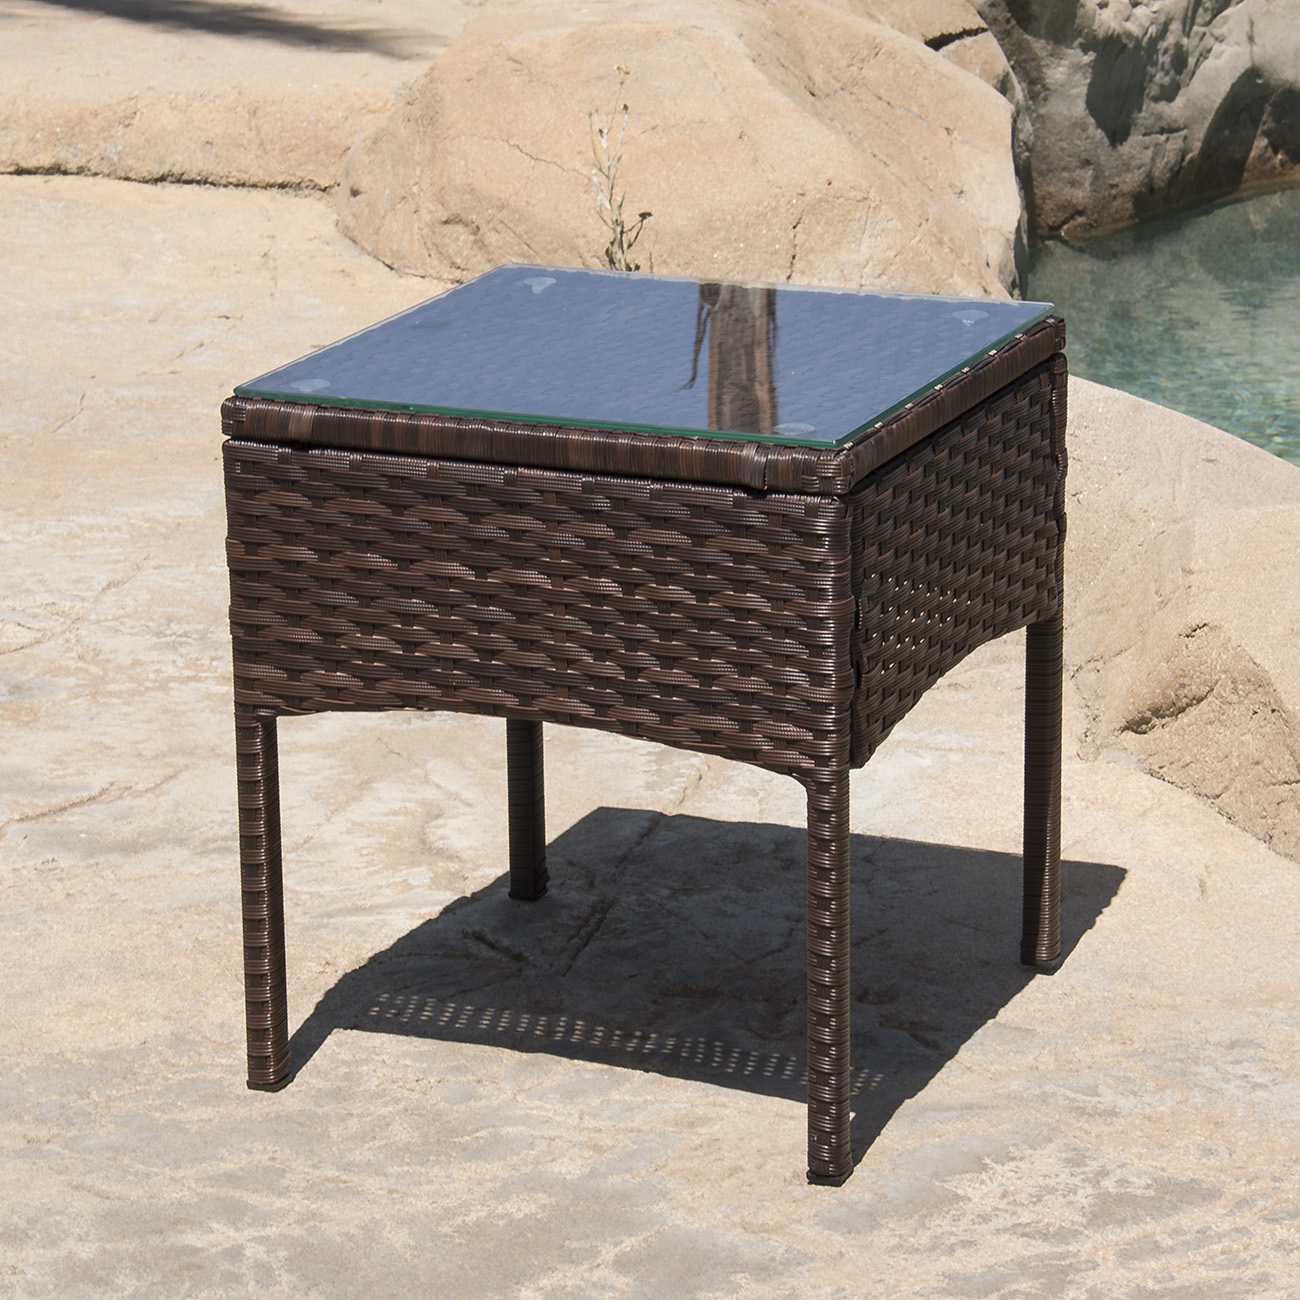 3-PCS-Outdoor-Rattan-Wicker-Patio-Chat-Chairs-amp-Table-Furniture-Set-Lounge thumbnail 4